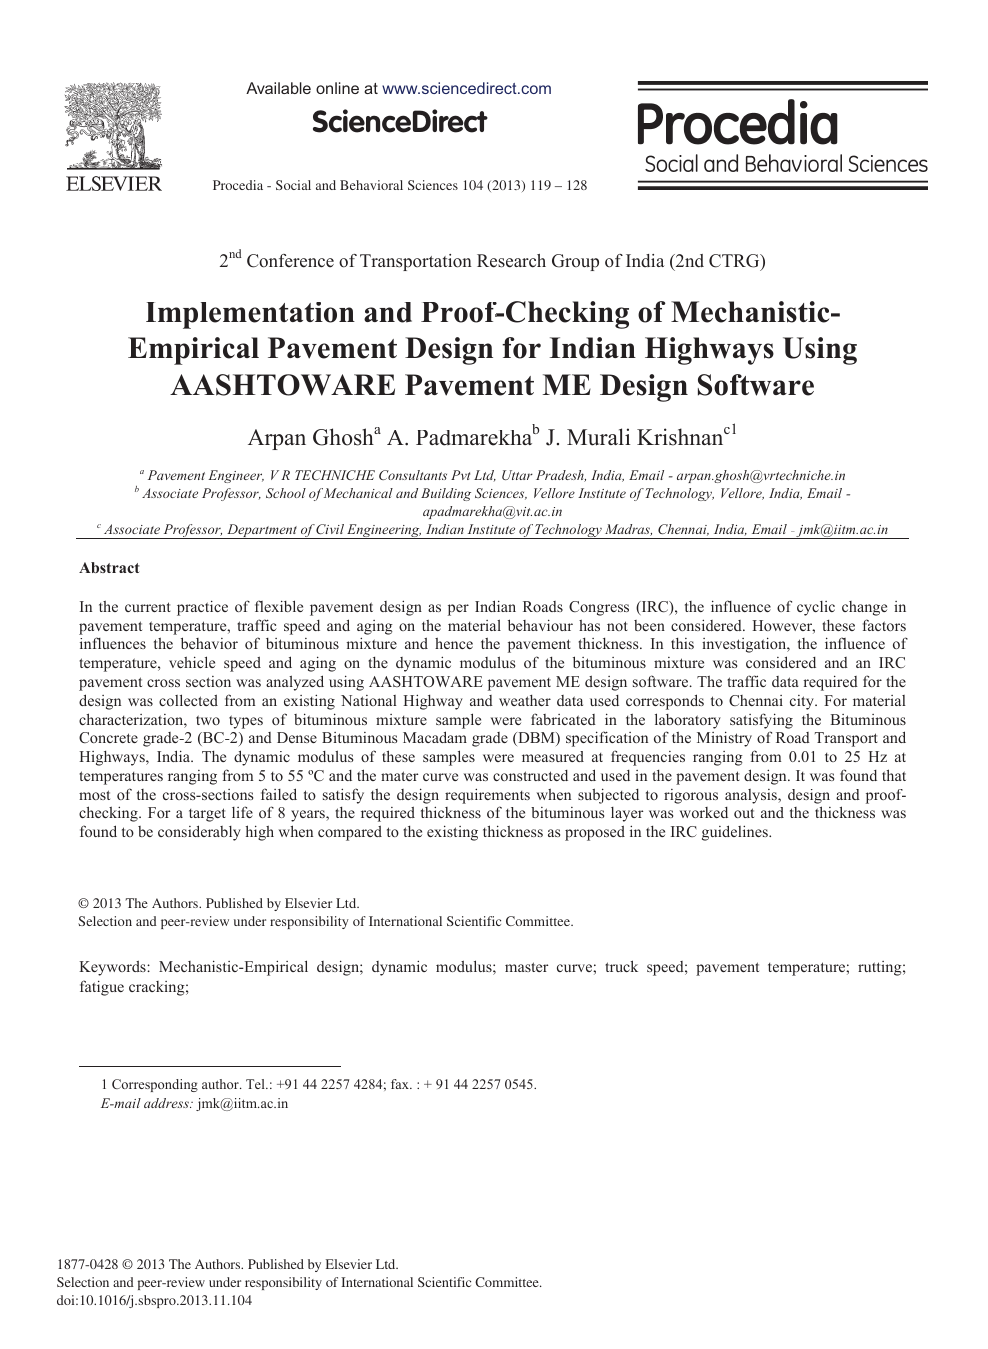 Implementation And Proof Checking Of Mechanistic Empirical Pavement Design For Indian Highways Using Aashtoware Pavement Me Design Software Topic Of Research Paper In Civil Engineering Download Scholarly Article Pdf And Read For Free